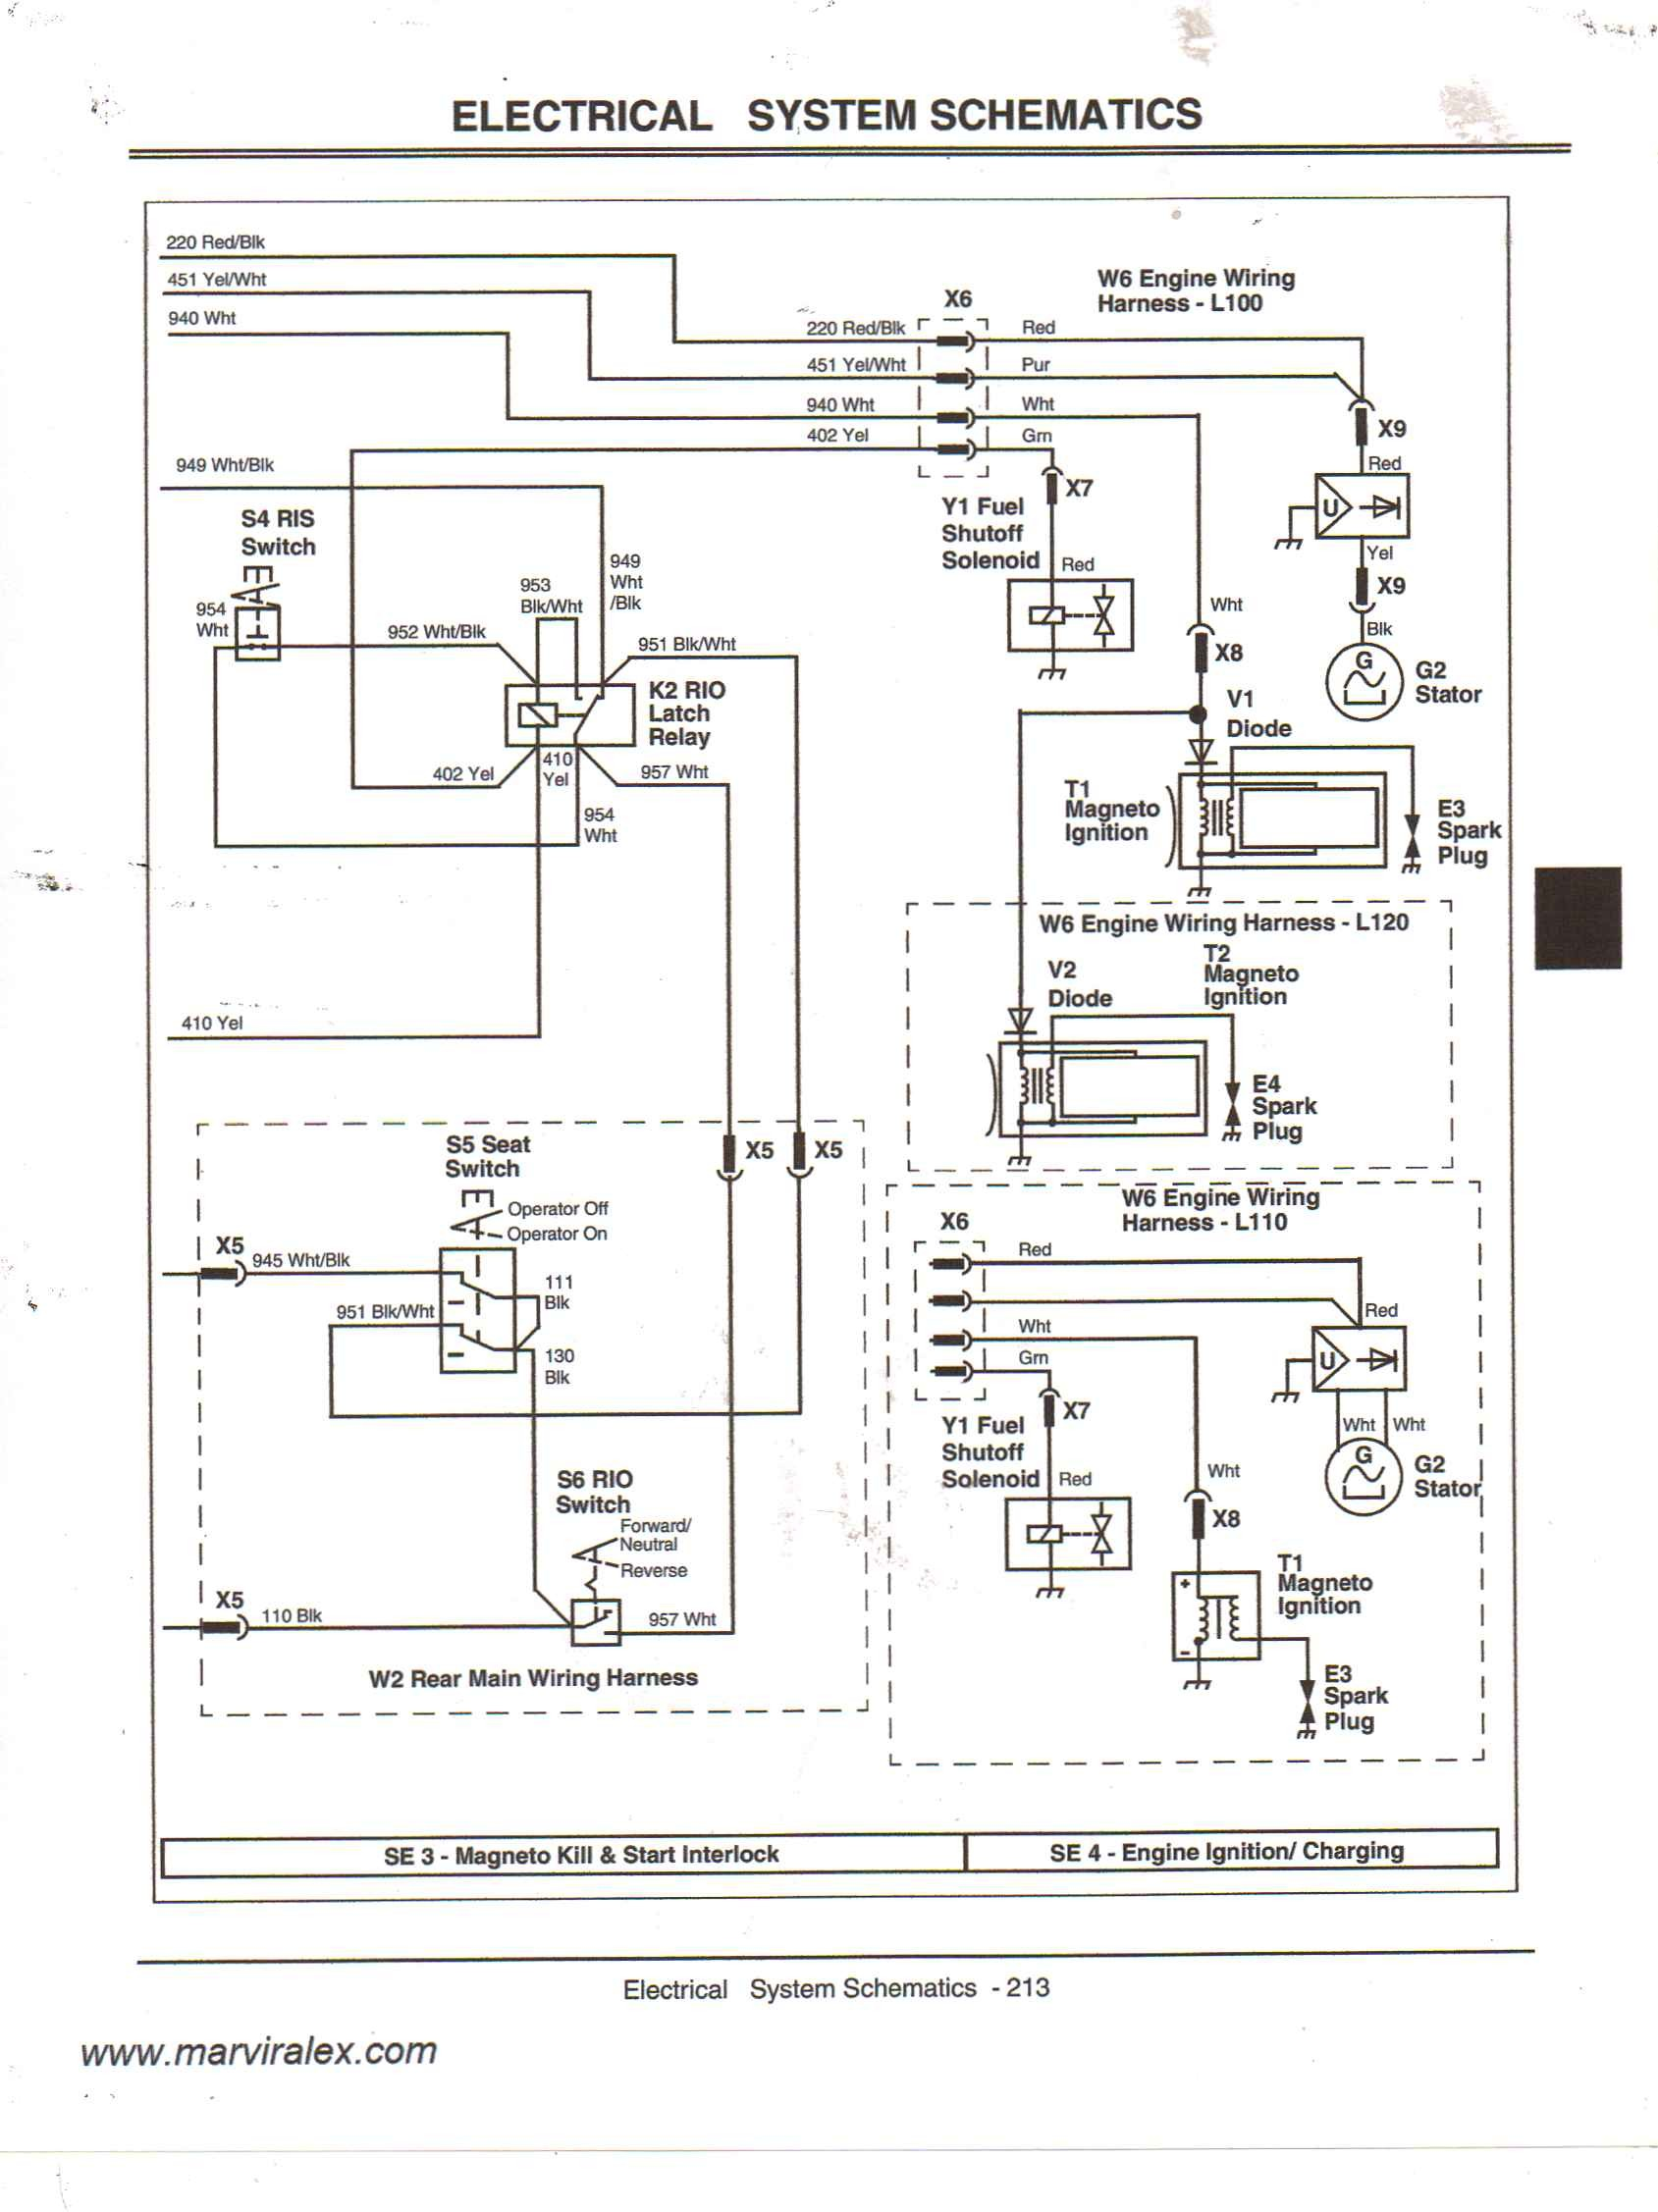 hight resolution of for gator 4x2 wiring diagram simple wiring schema john deere gator 6x4 diagram john deere gator plow wiring diagram